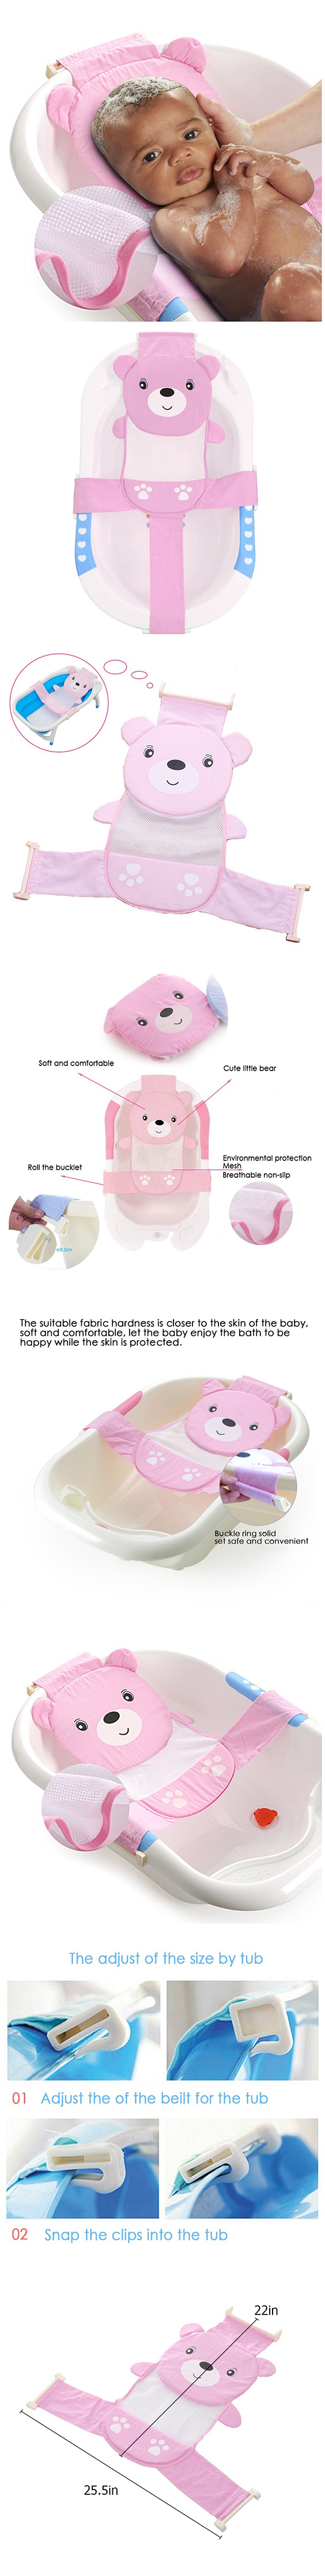 Sealive Adjustable Baby Bath Seat Support Net Bathtub Sling Shower ...